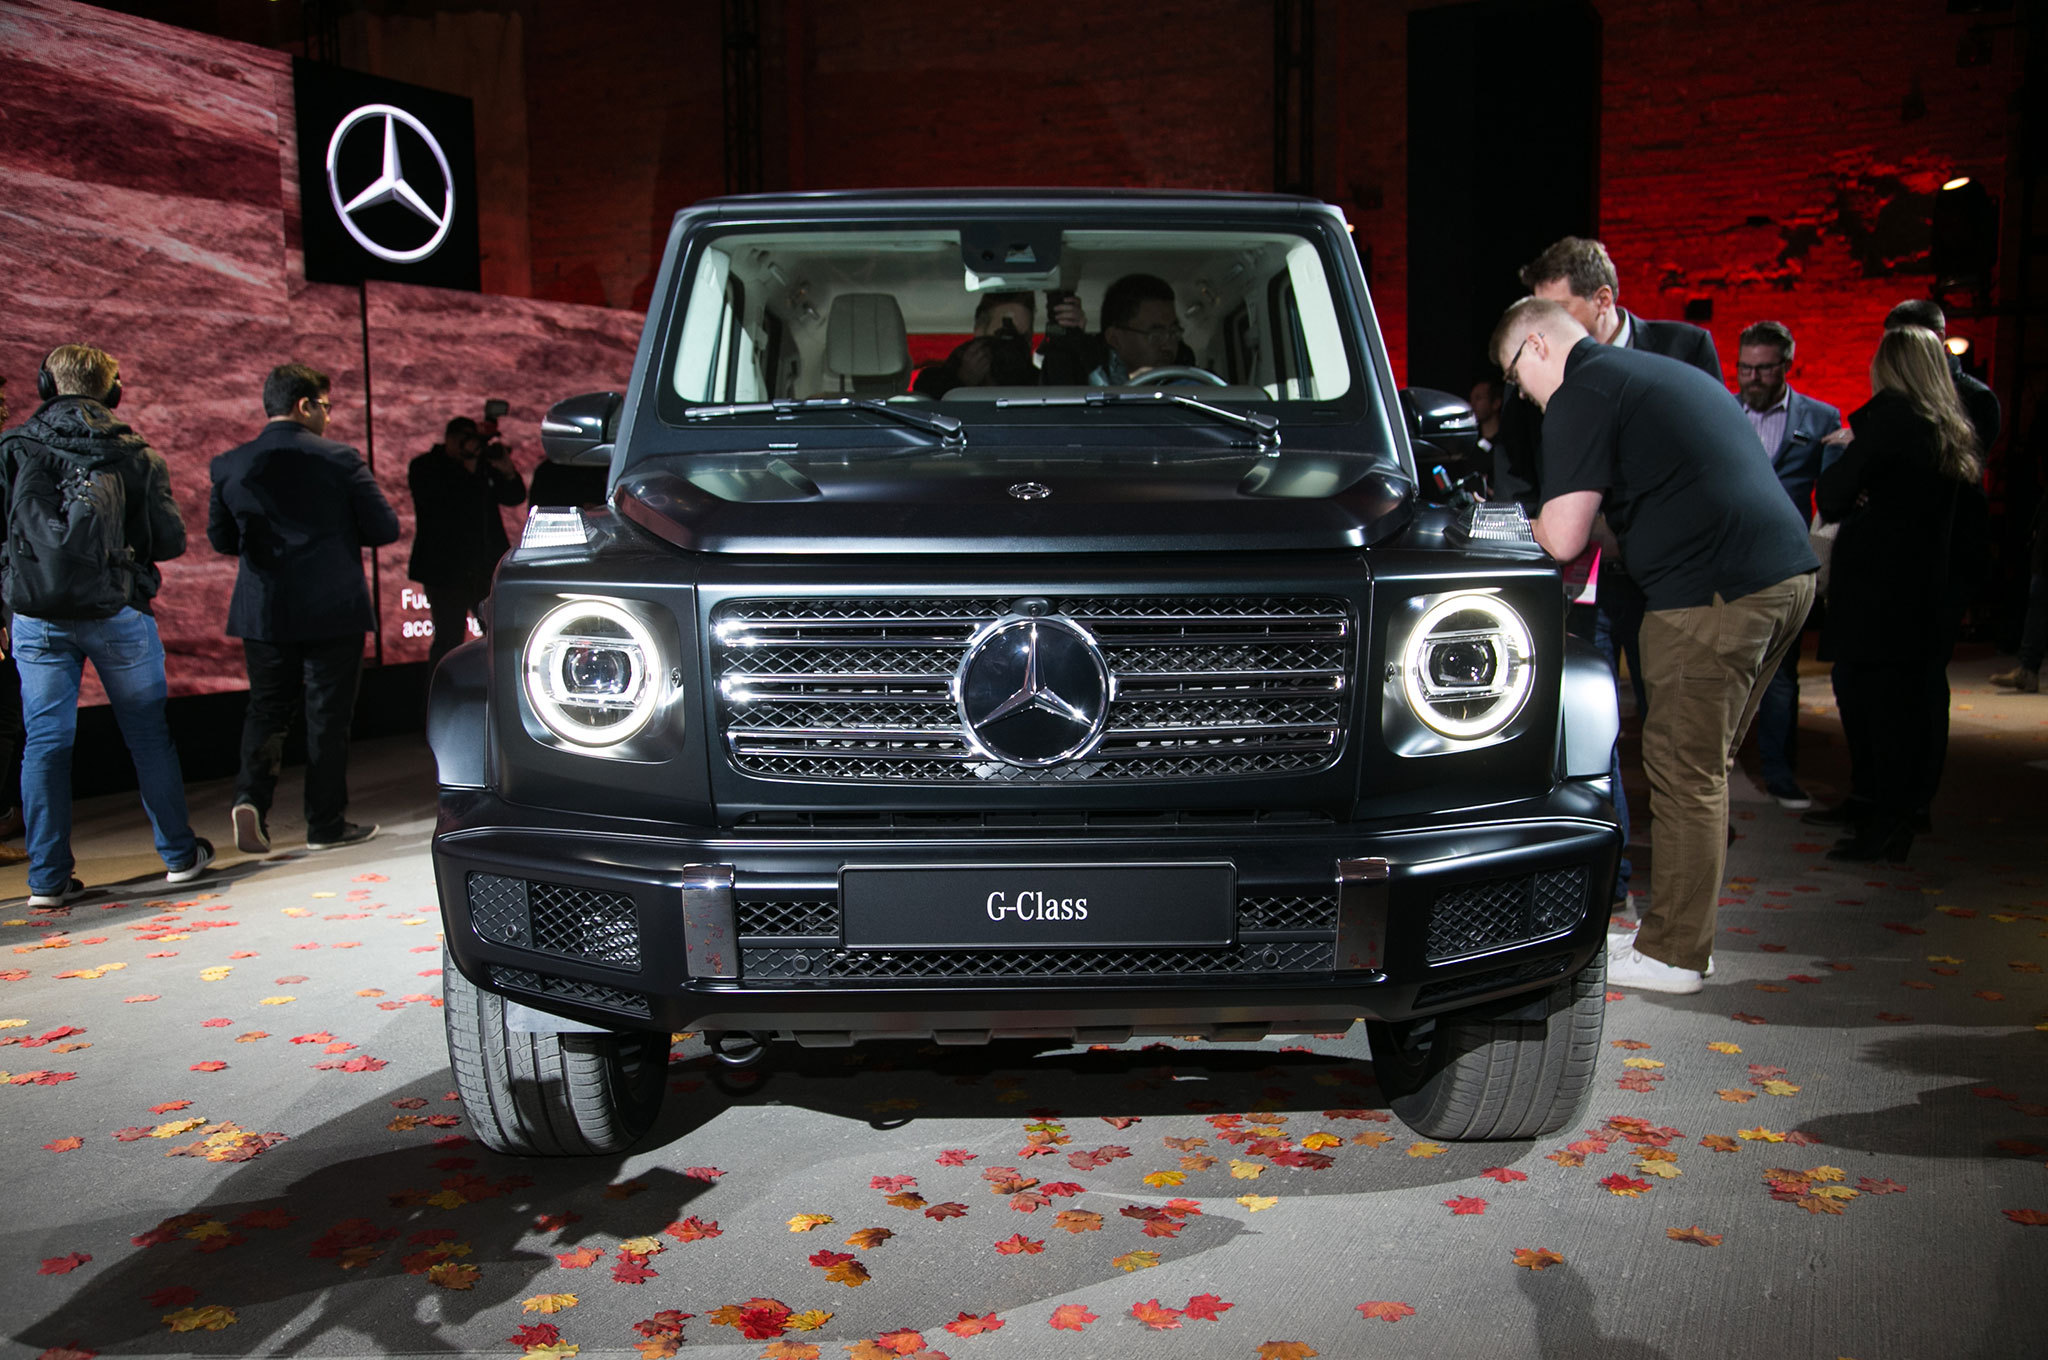 http://st.automobilemag.com/uploads/sites/11/2018/01/2019-Mercedes-Benz-G-Class-front-view-1.jpg